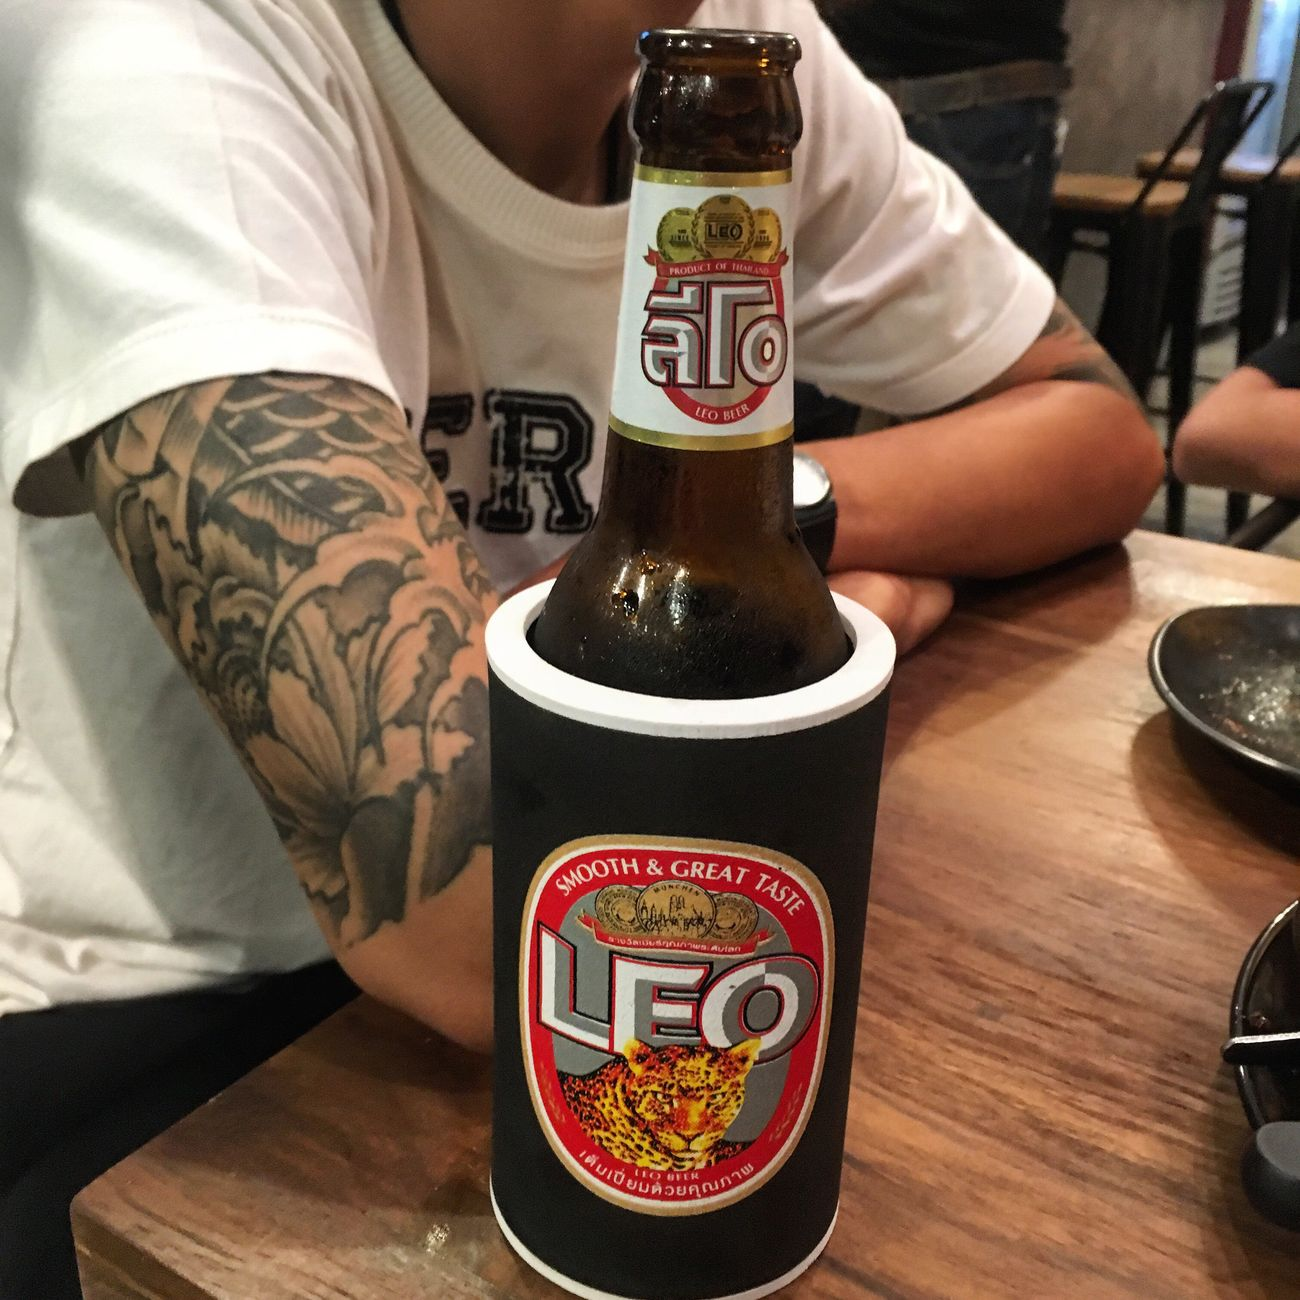 เย็นอารมณ์🍻 Beer Leo Thailand Chillaxing Joy Last Night